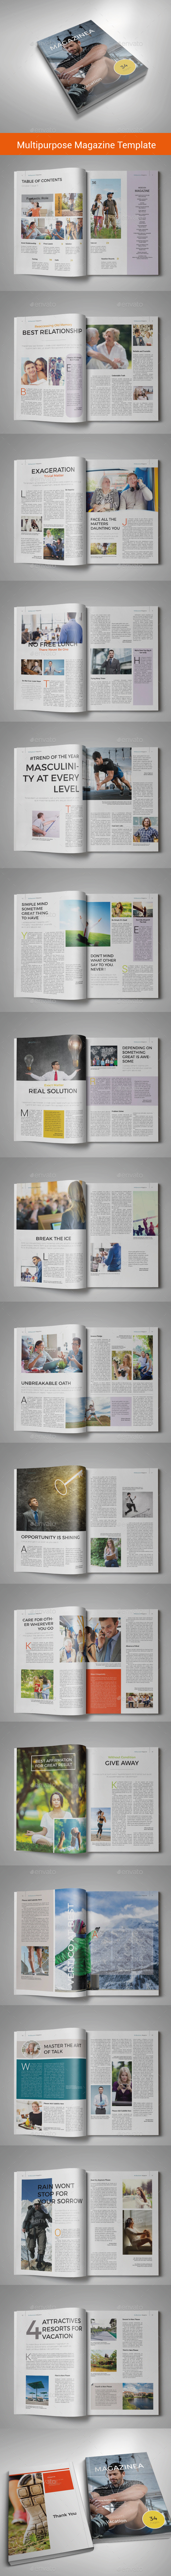 34 Pgs | Indesign Multipurpose Magazine 11 - Magazines Print Templates